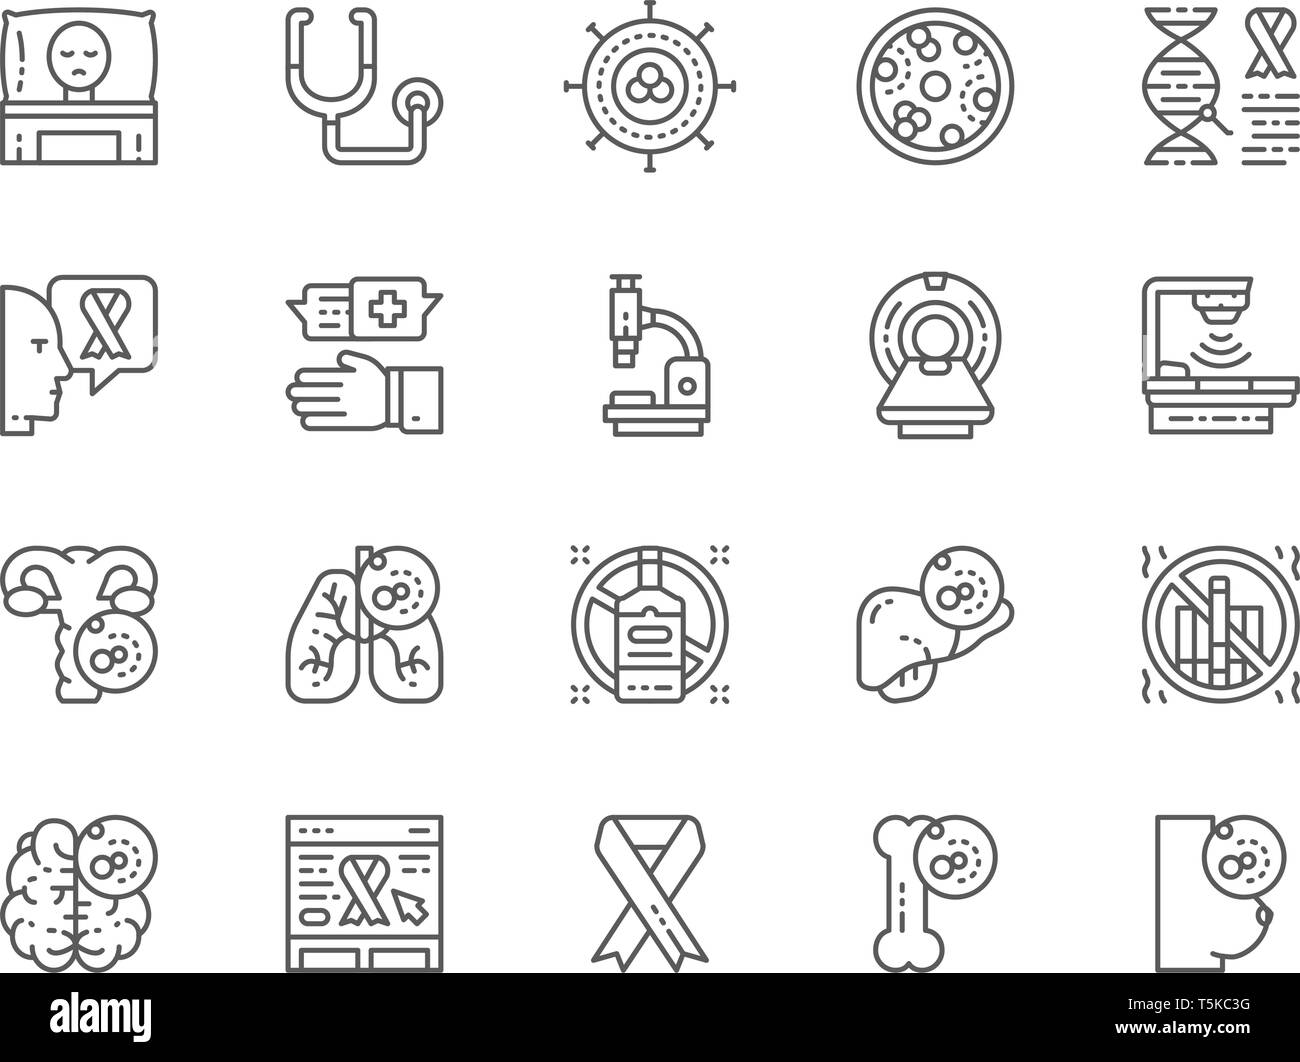 Set of Cancer and Chemotherapy Line Icons. Oncology, Sarcoma, Leukemia and more. - Stock Image